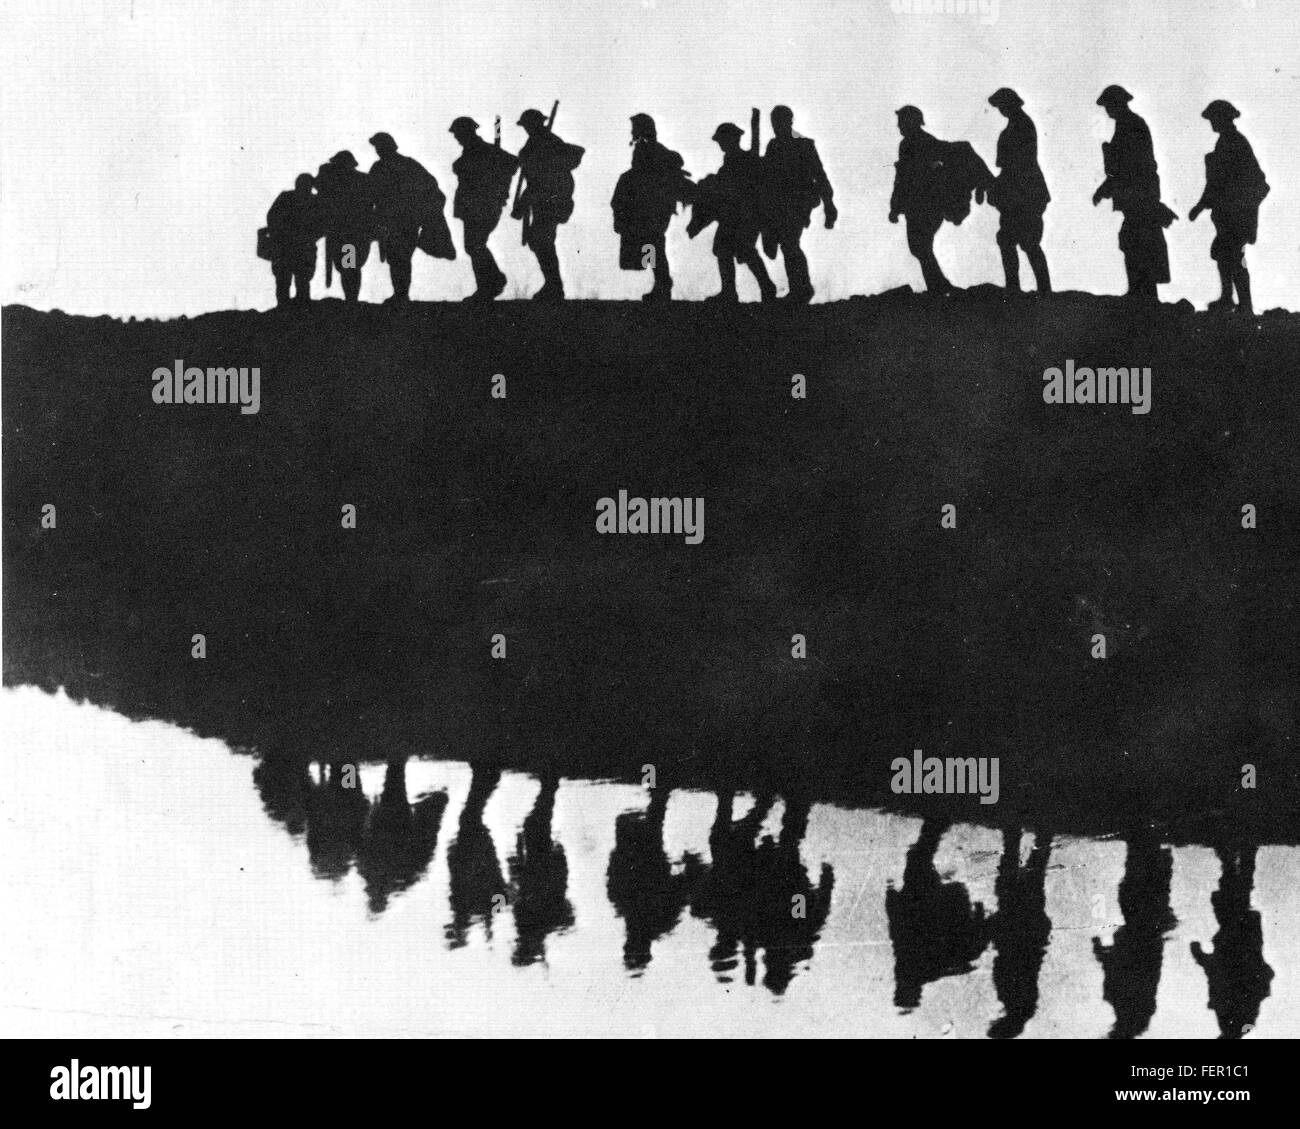 FIRST WORLD WAR  Silhoutte of British soldiers - Stock Image